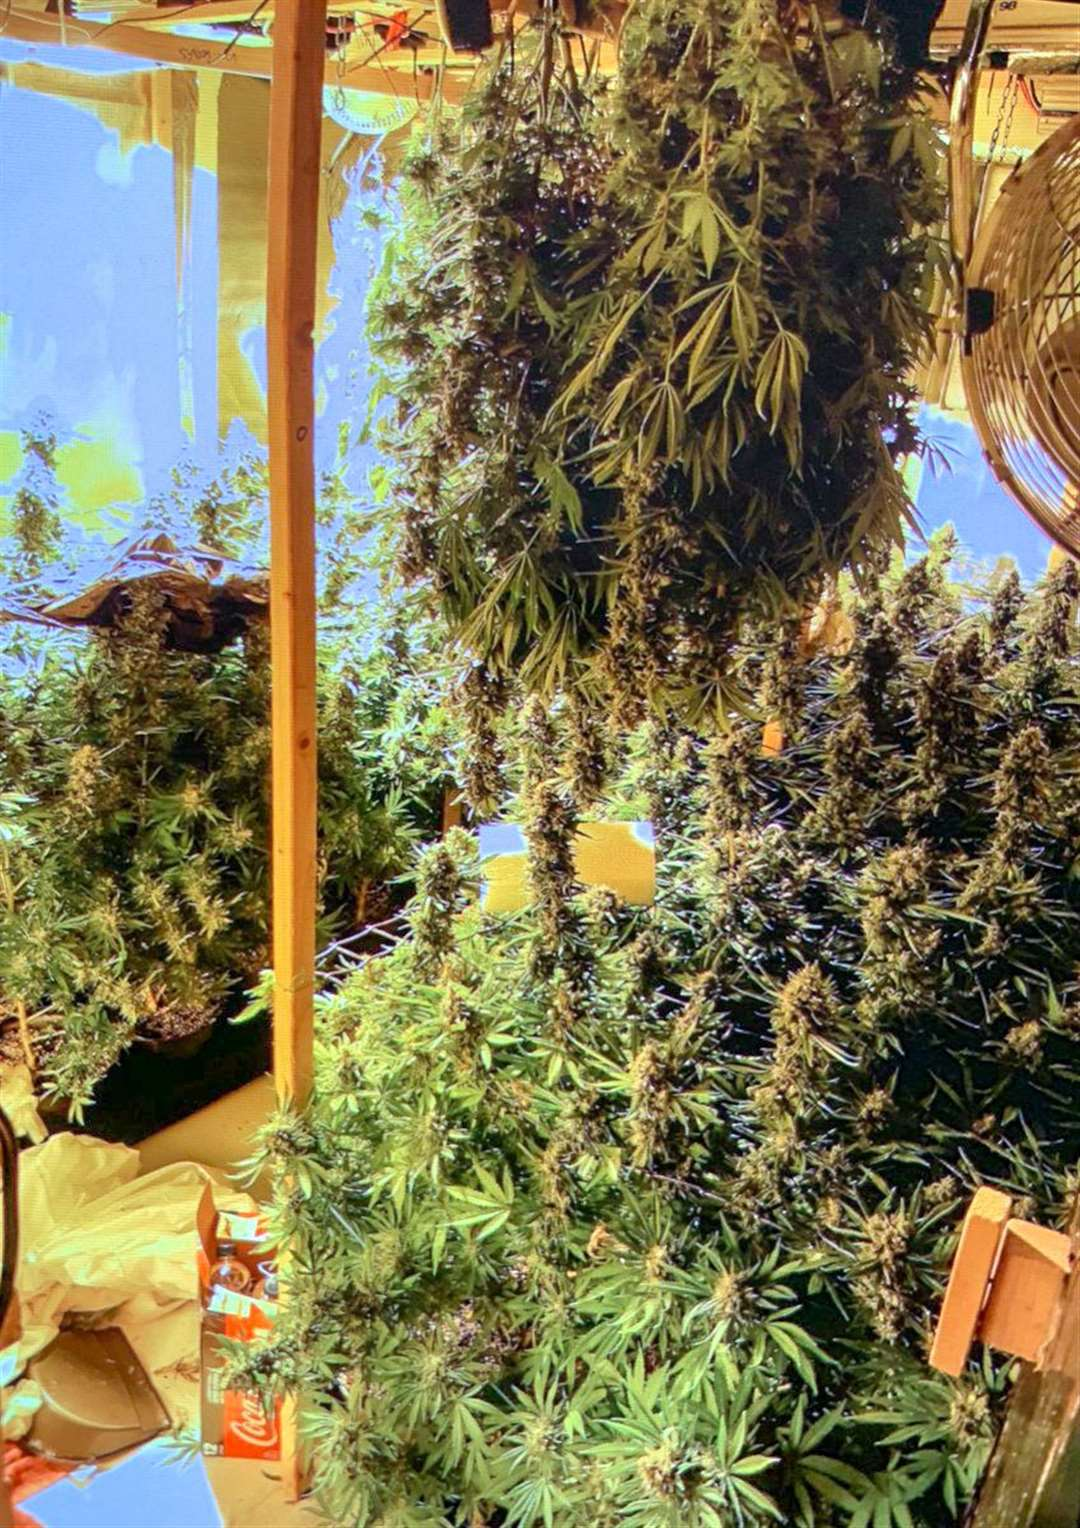 Cannabis factory discovered in secret bedroom. (7657776)